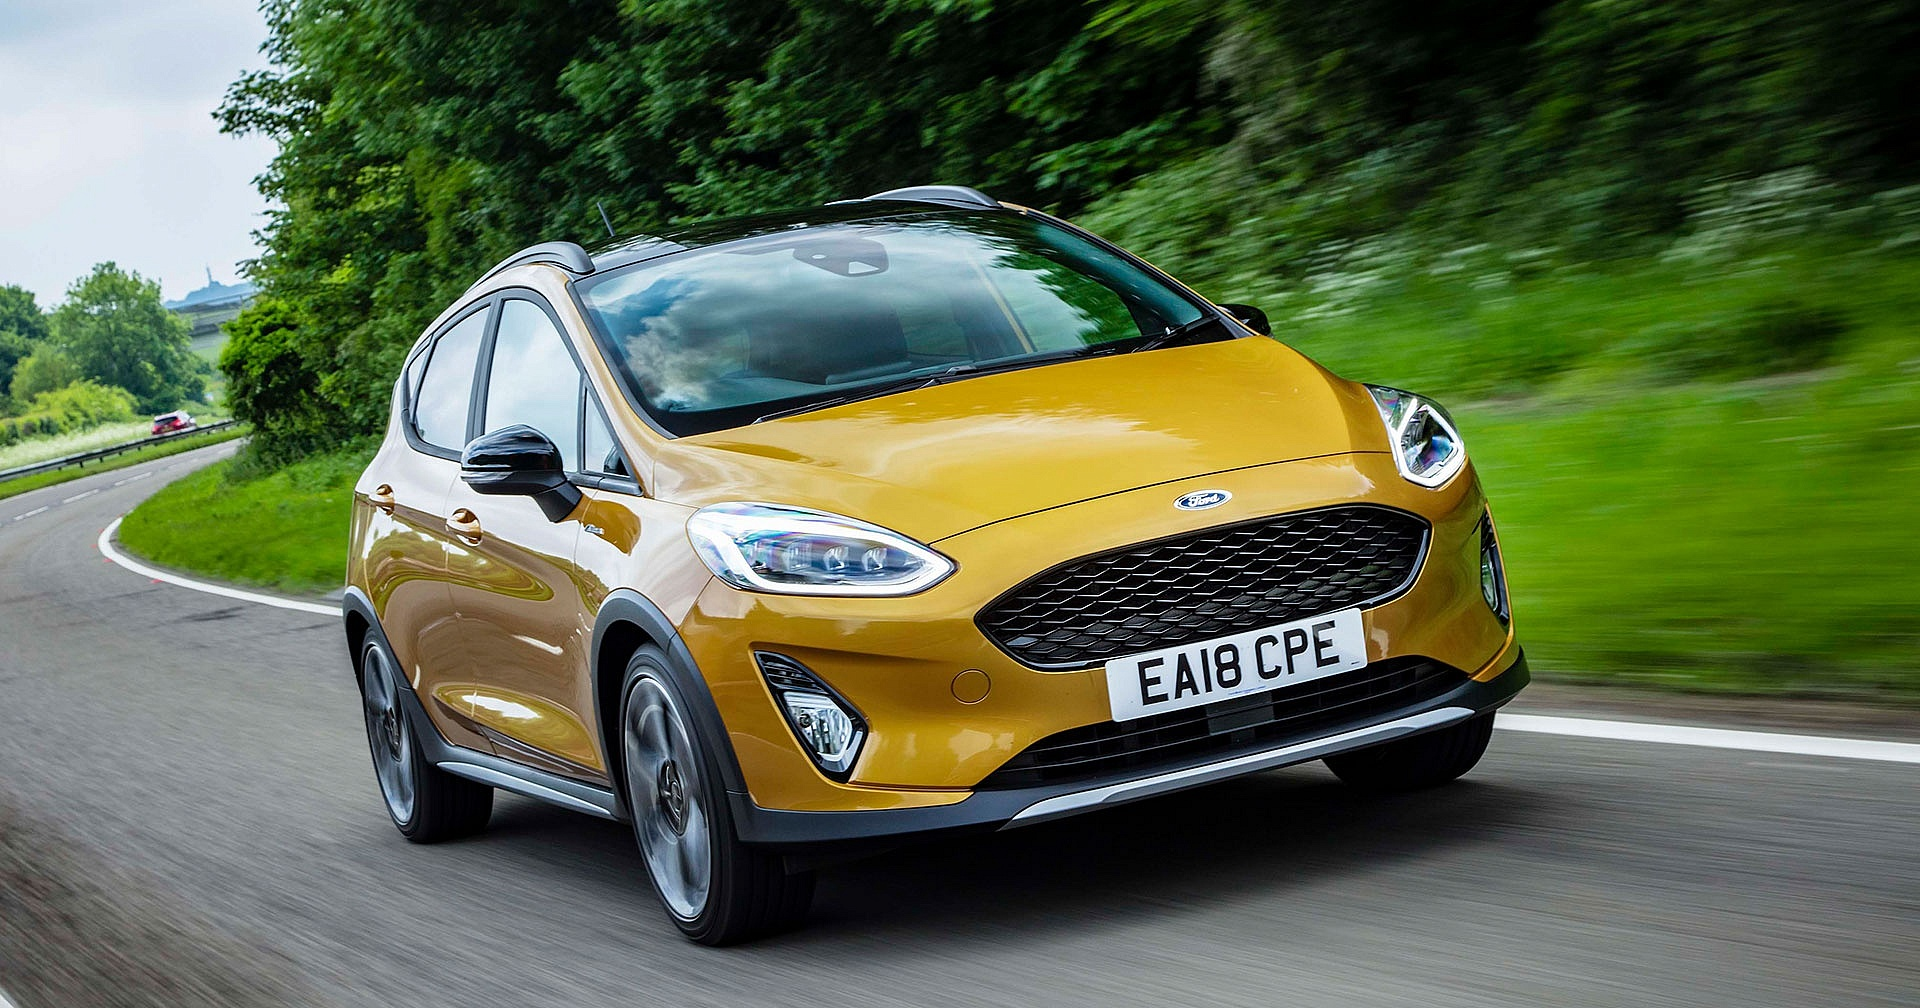 are uk cars affectedthe worldwide ford recall? – which? news